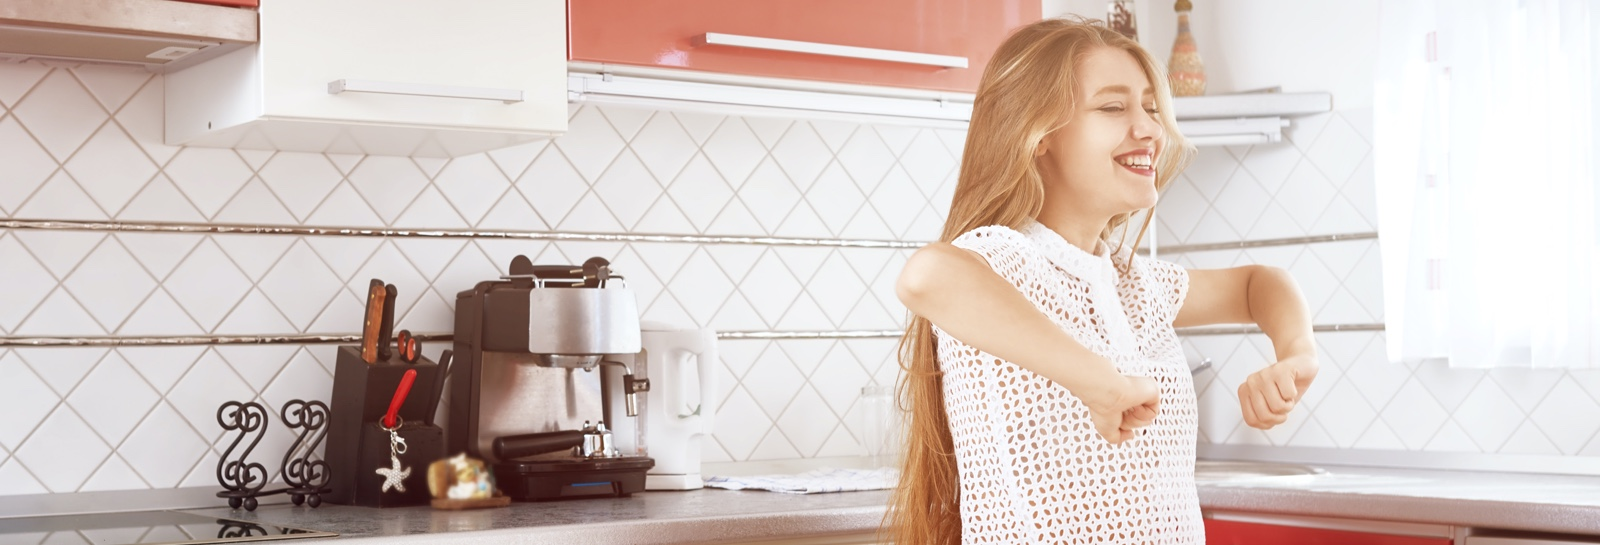 a woman smiling and dancing in the kitchen